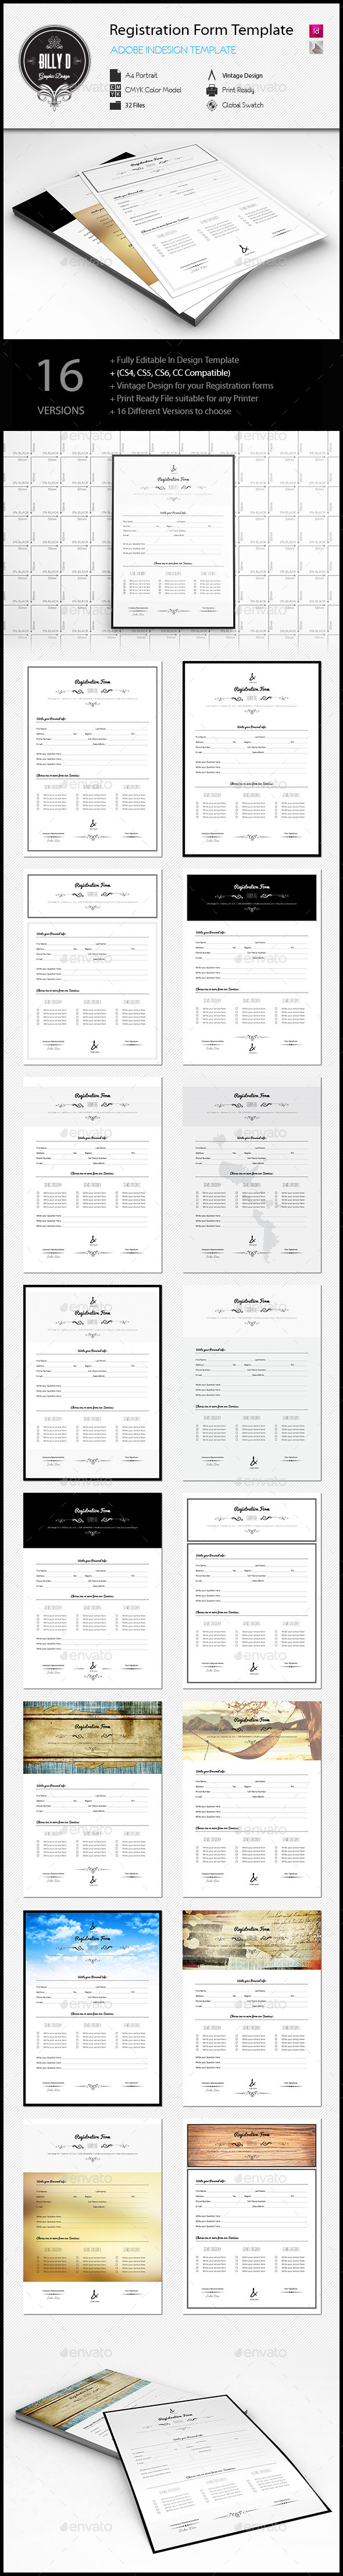 registration form template a4 form vintage and templates registration form template cs4 21x29 7 a4 form form template